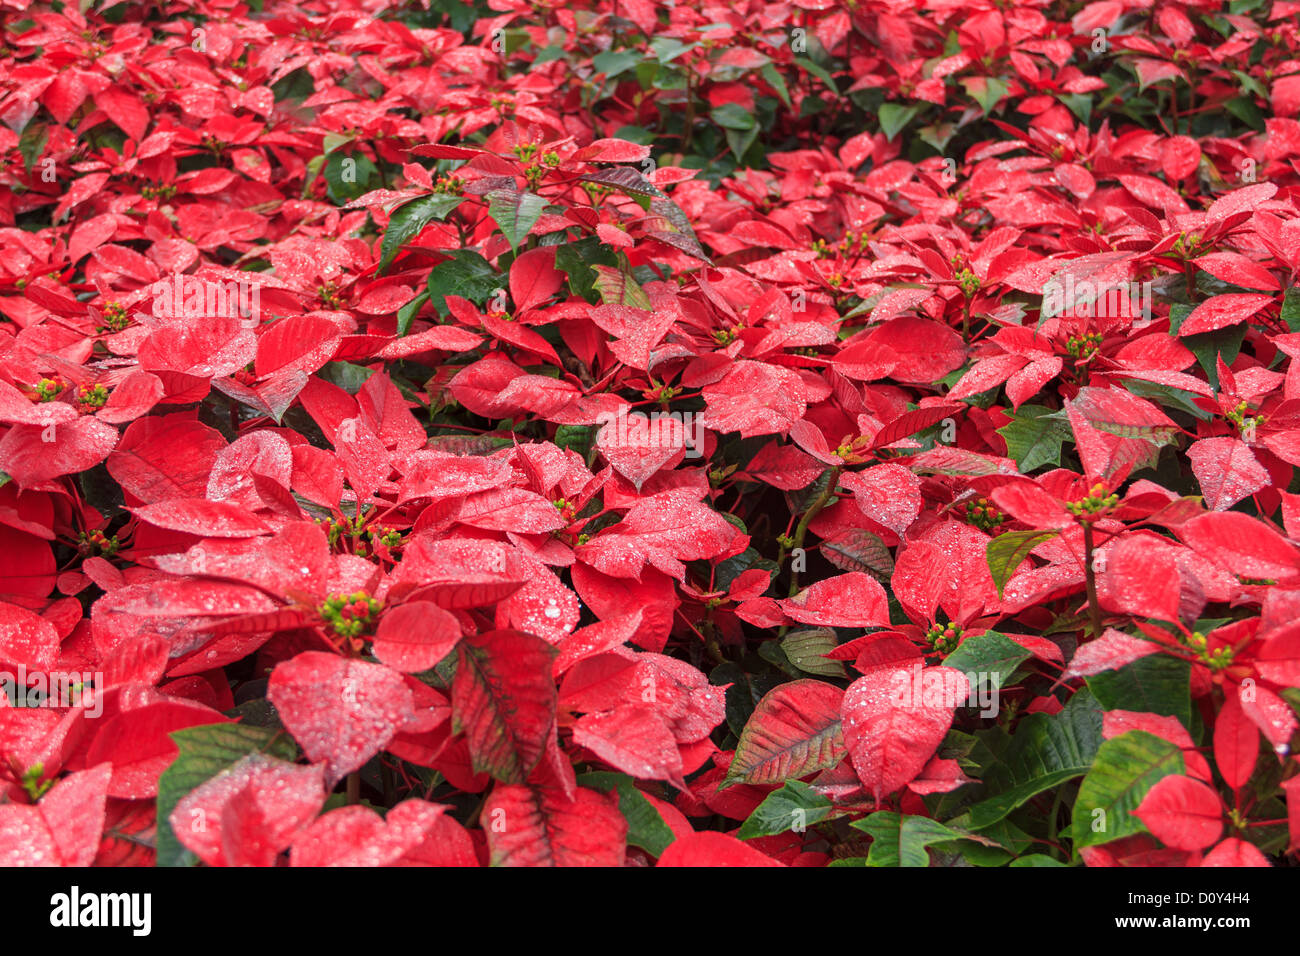 Red Poinsettia Garden With Green Leaves Christmas Flower Stock